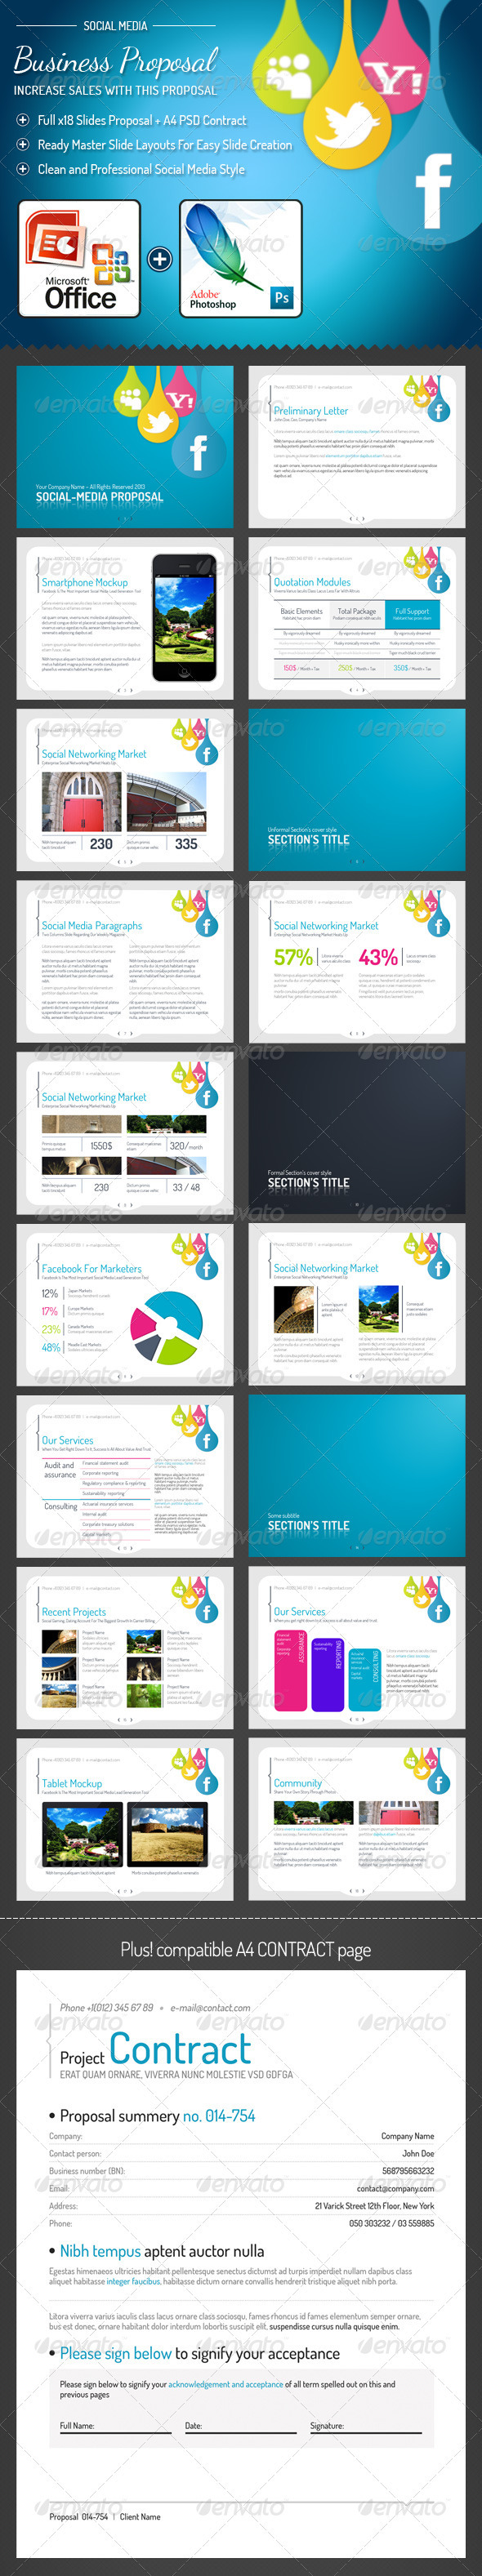 Social-media PowerPoint Presentation Template - Business Powerpoint Templates